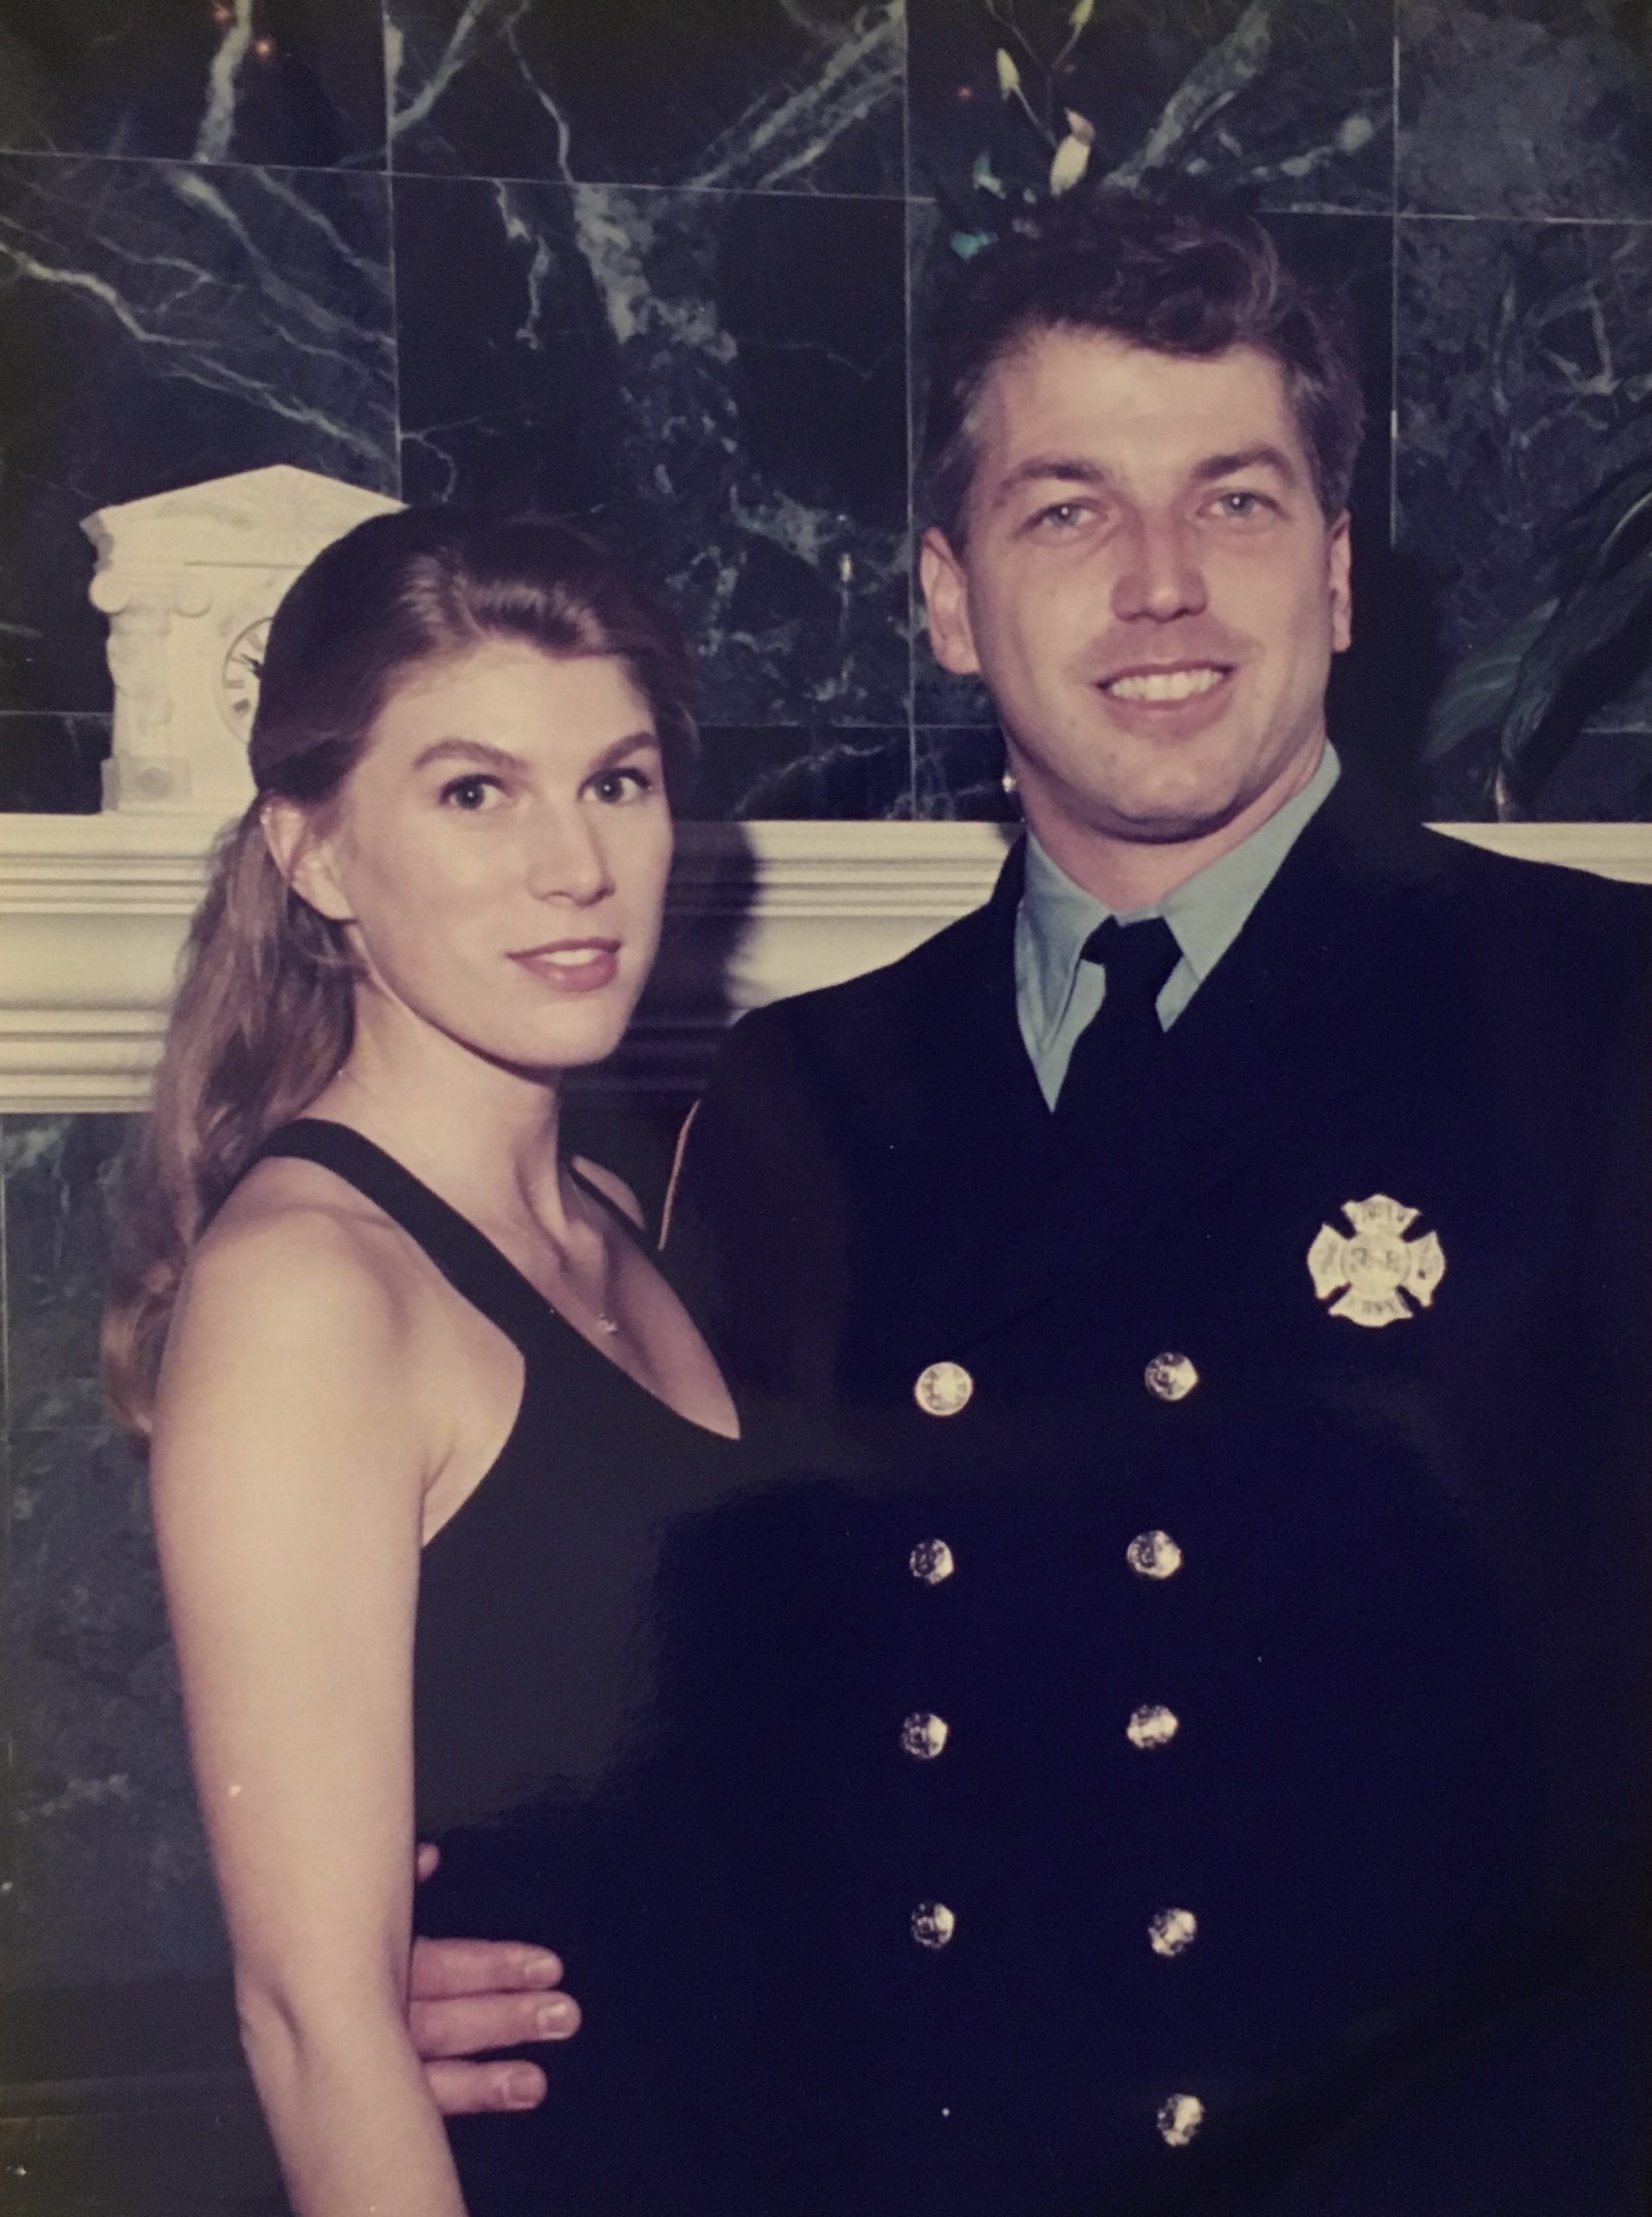 LJ Heming and Katie Miller at the 1997 Fireman's Inspection Dinner for Coram Fire Department. Heming moved to the Coram Fire Department in 1997.